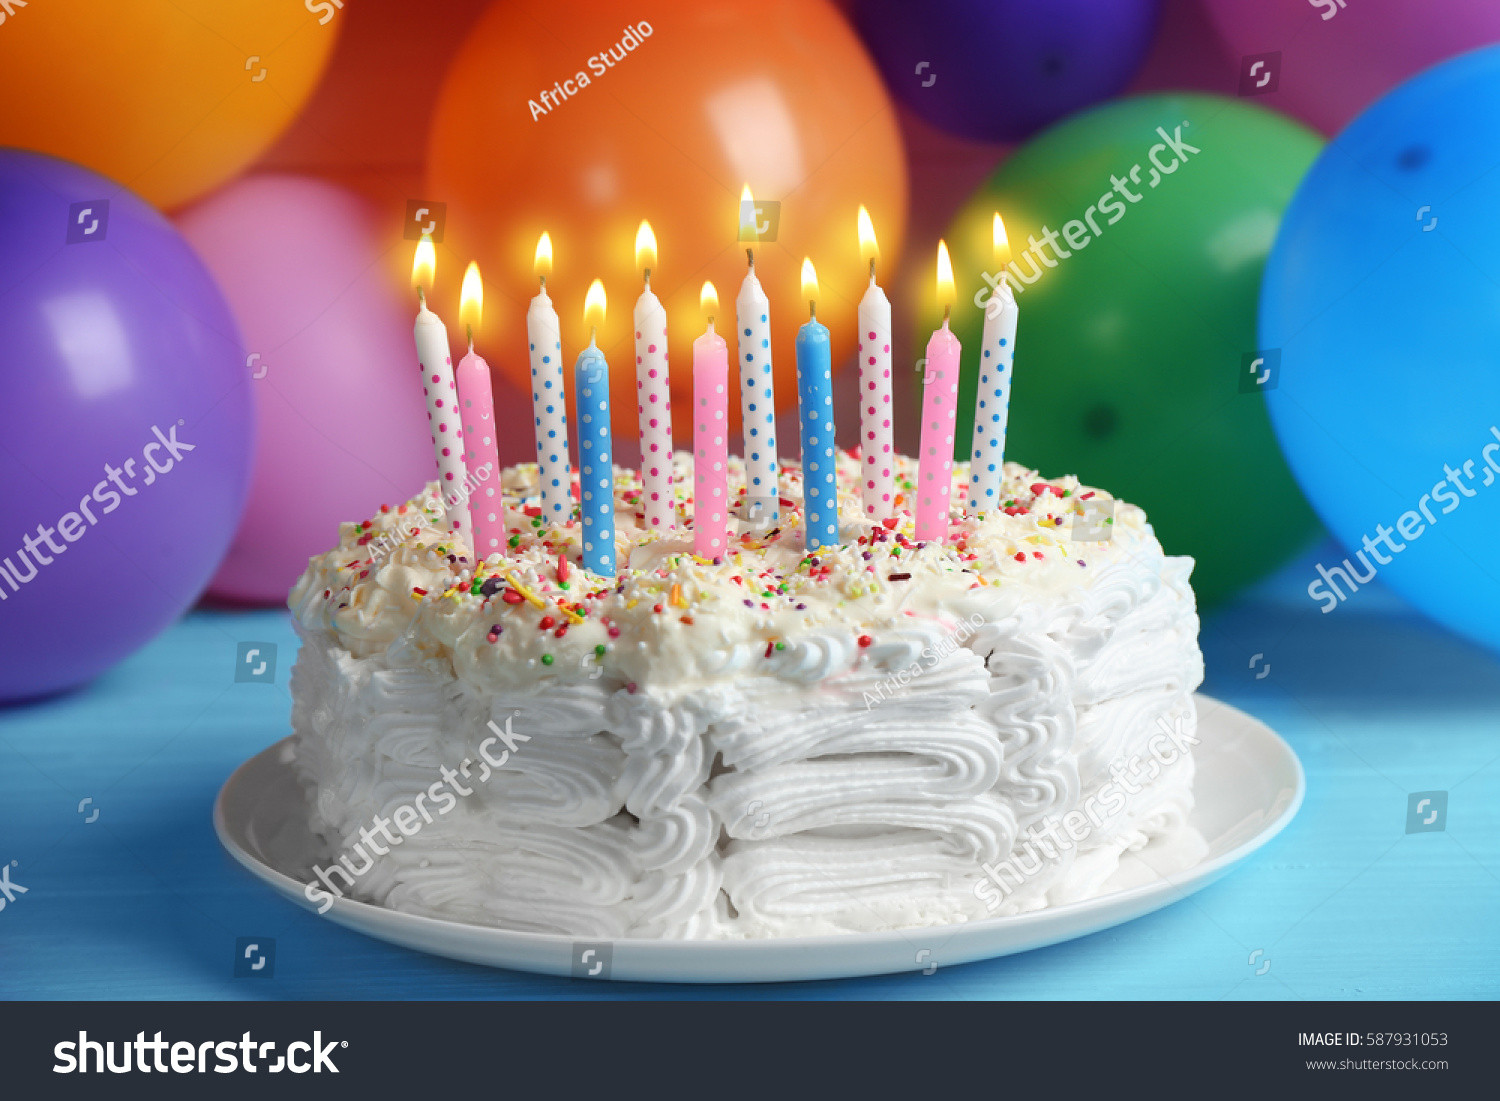 Birthday Cake With Candles And Balloons  Birthday Cake Candles Balloons Background Stock